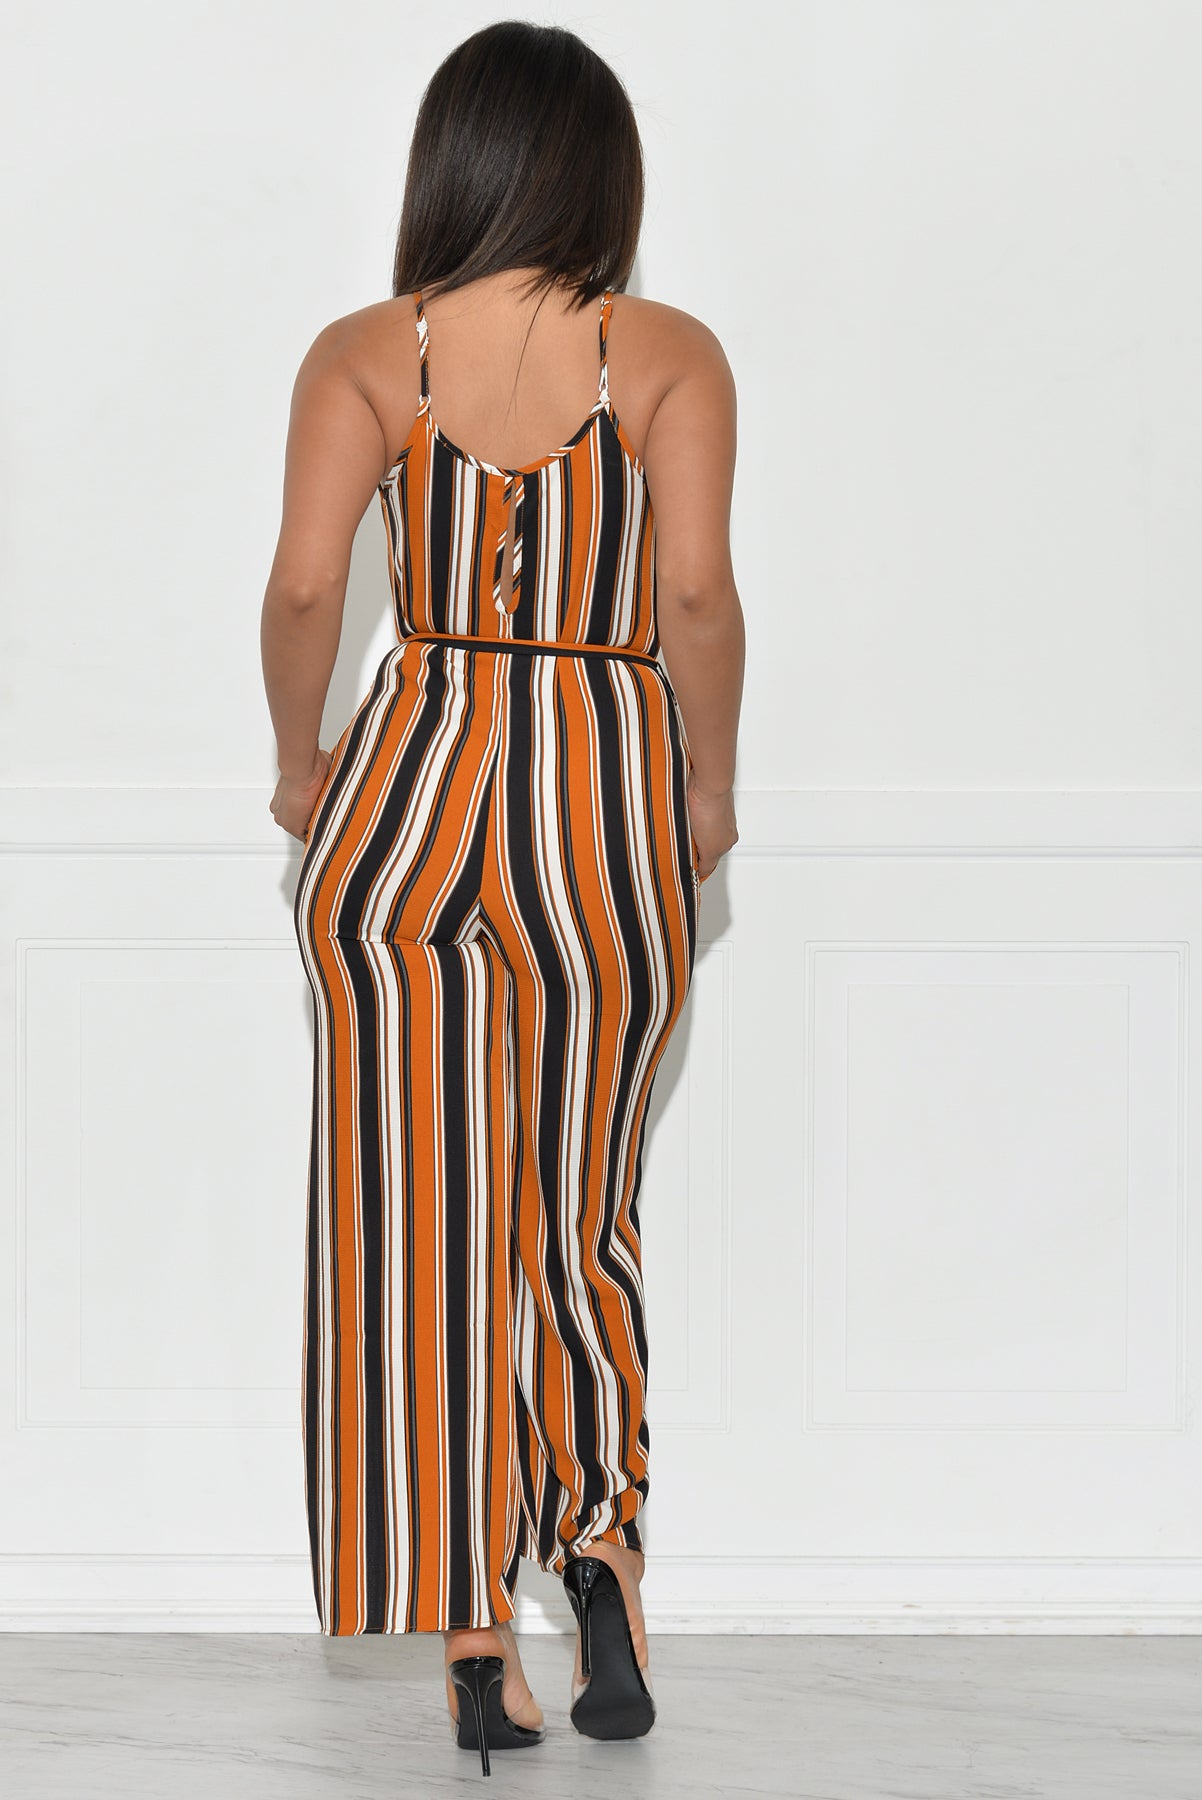 Nyla Striped Jumpsuit - Mustard/Black/Cream